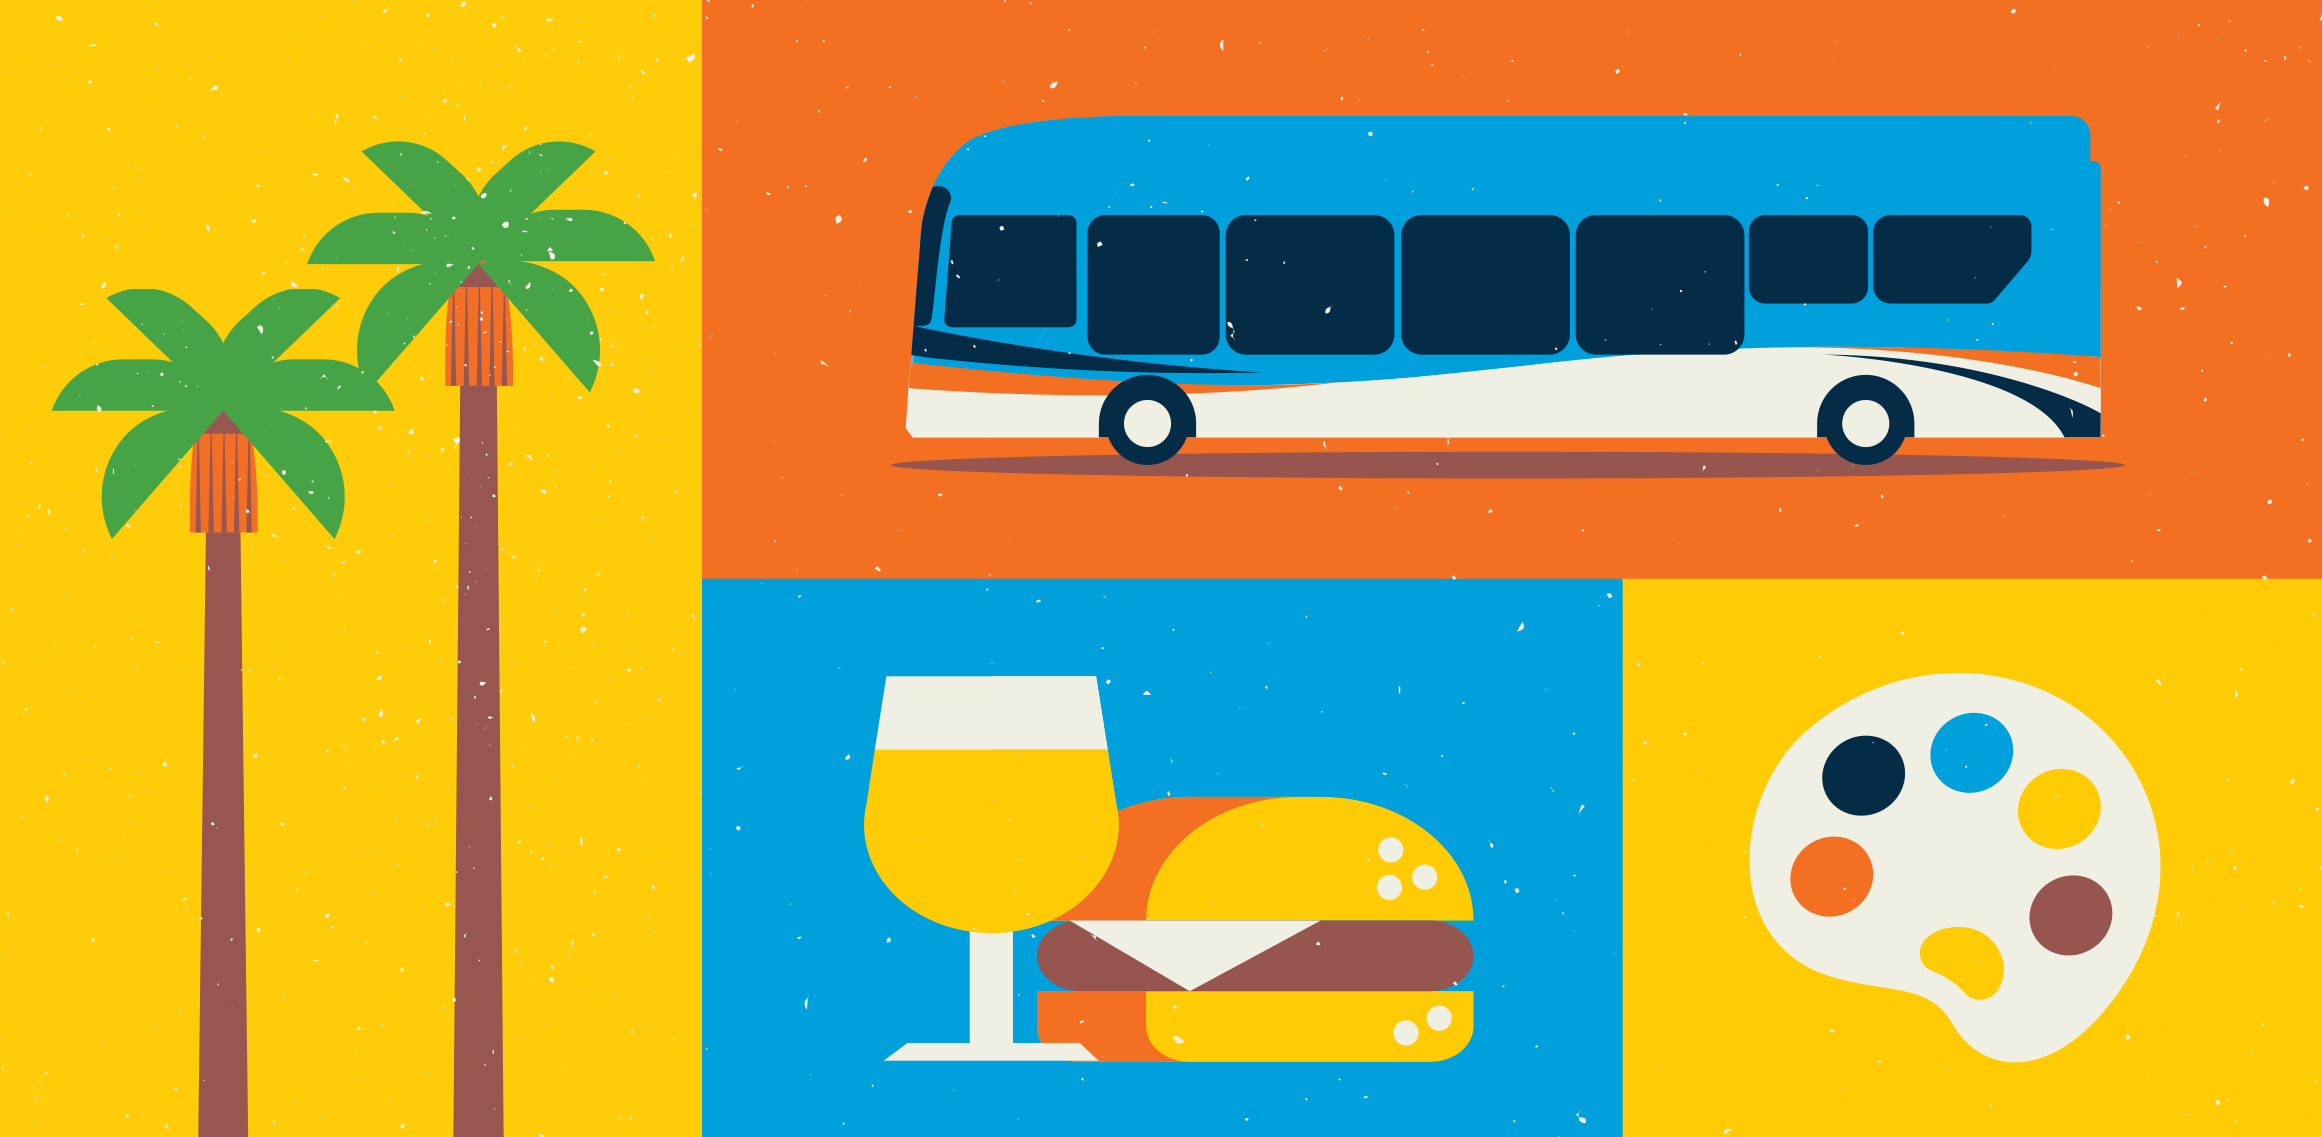 OCBus Your City Your Ride 2019